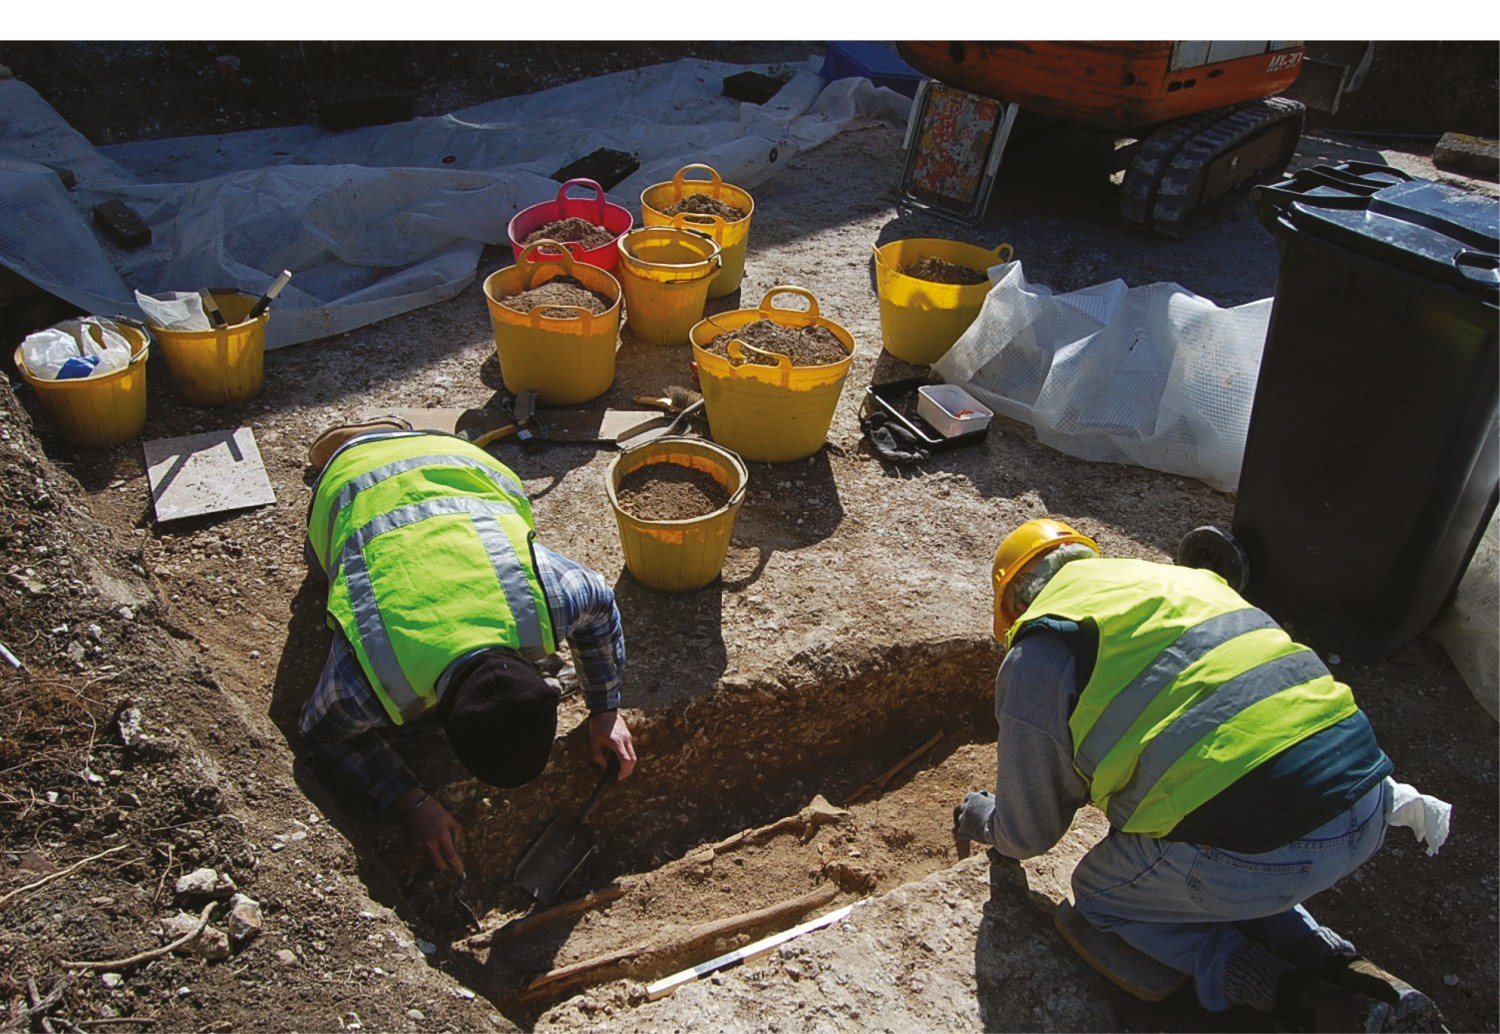 OPPOSITE The Kent Archaeological Rescue Unit has spent over 50 years excavating and recording archaeological features threatened by development. Here some of the members are shown excavating burials at the Anglo-Saxon cemetery at Horton Kirby in 2017.